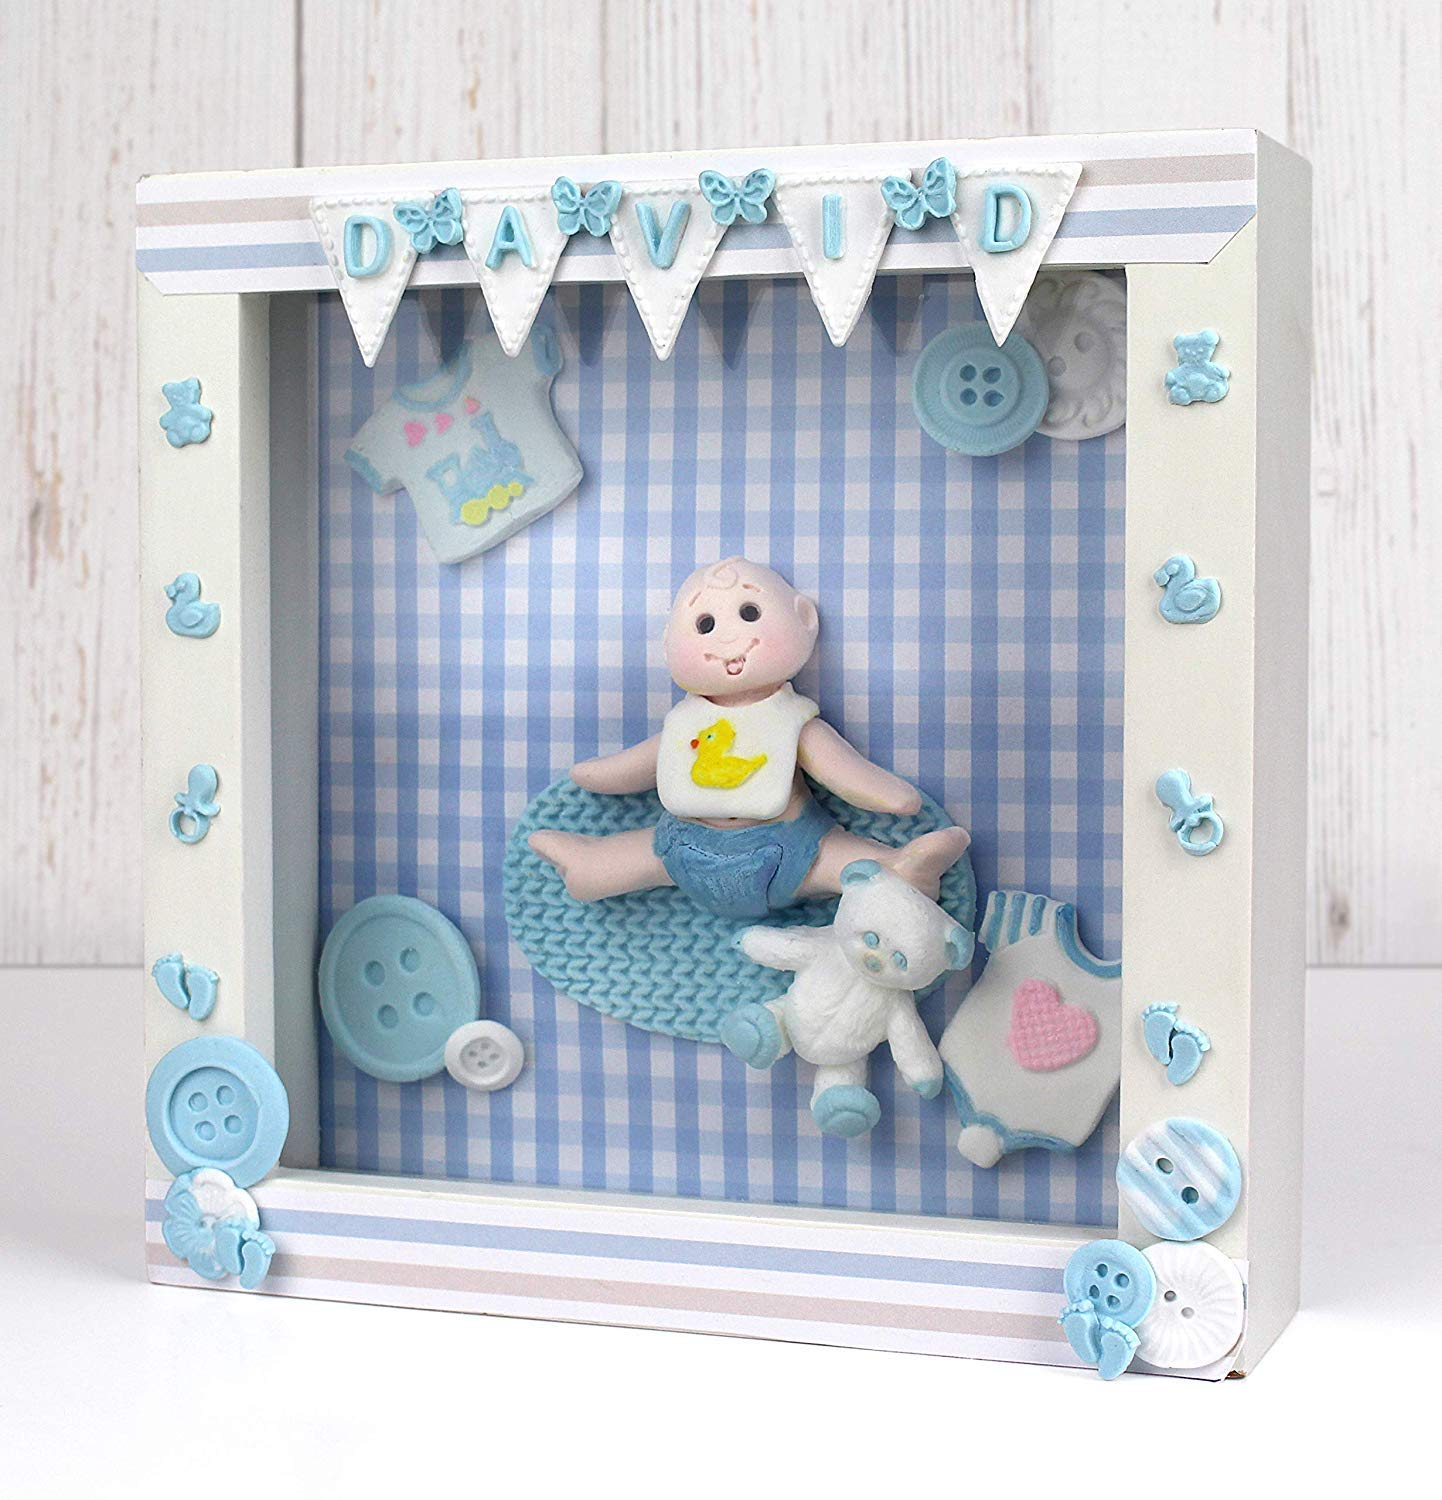 Sugarcraft and Candies Cupcakes Baby Teddy Bear Mold Cake Decorating